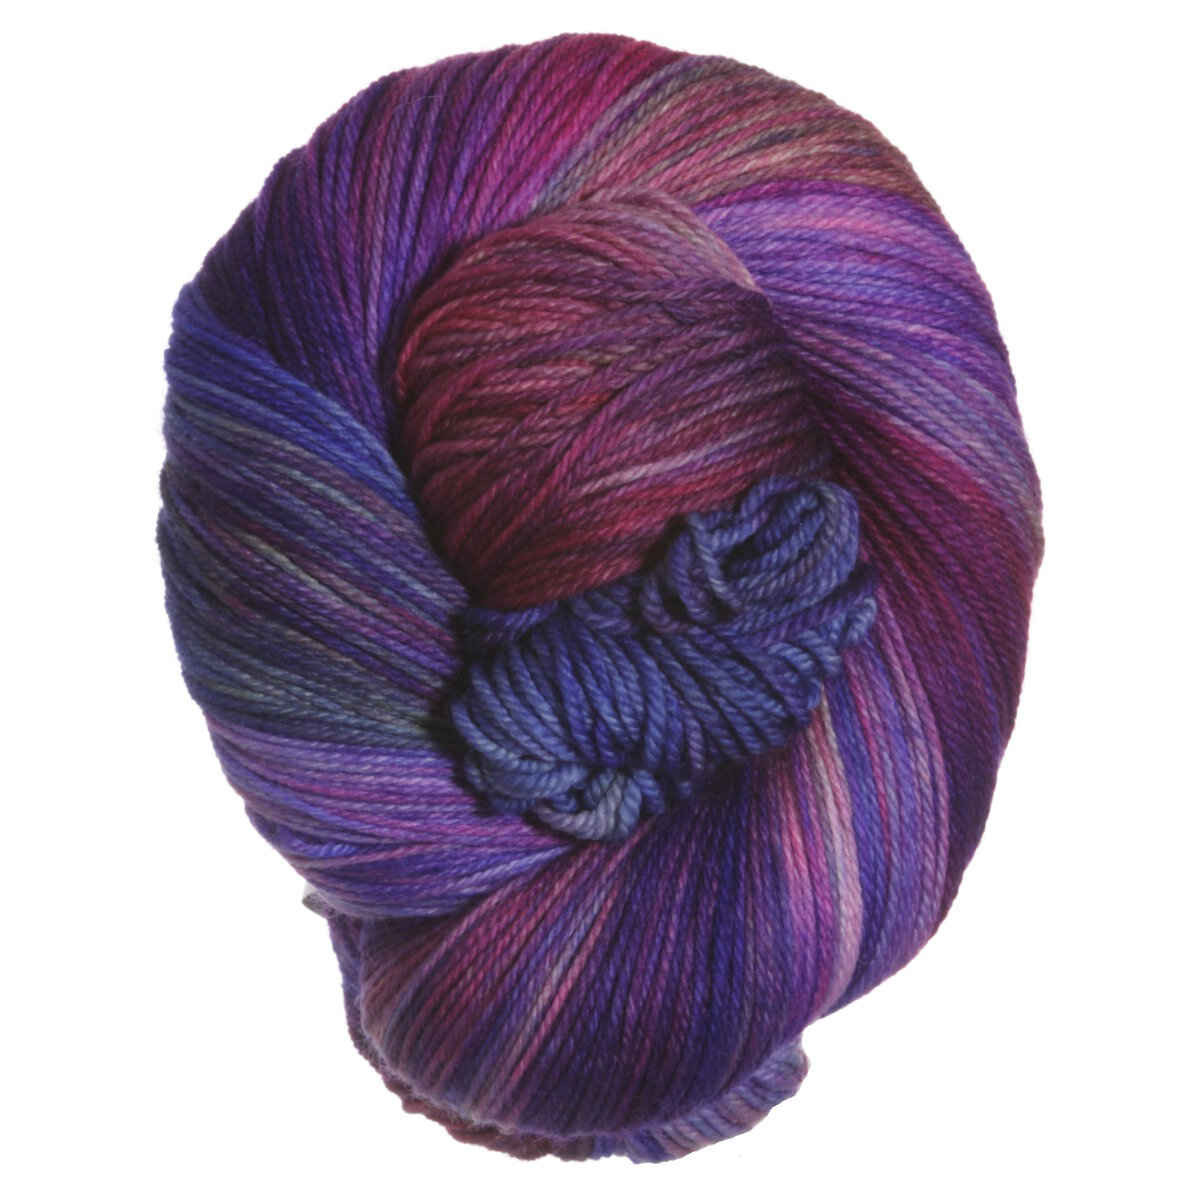 Dream In Color Yarn New Dream In Color Smooshy Yarn 726 Victoria Project Ideas Of Incredible 42 Photos Dream In Color Yarn